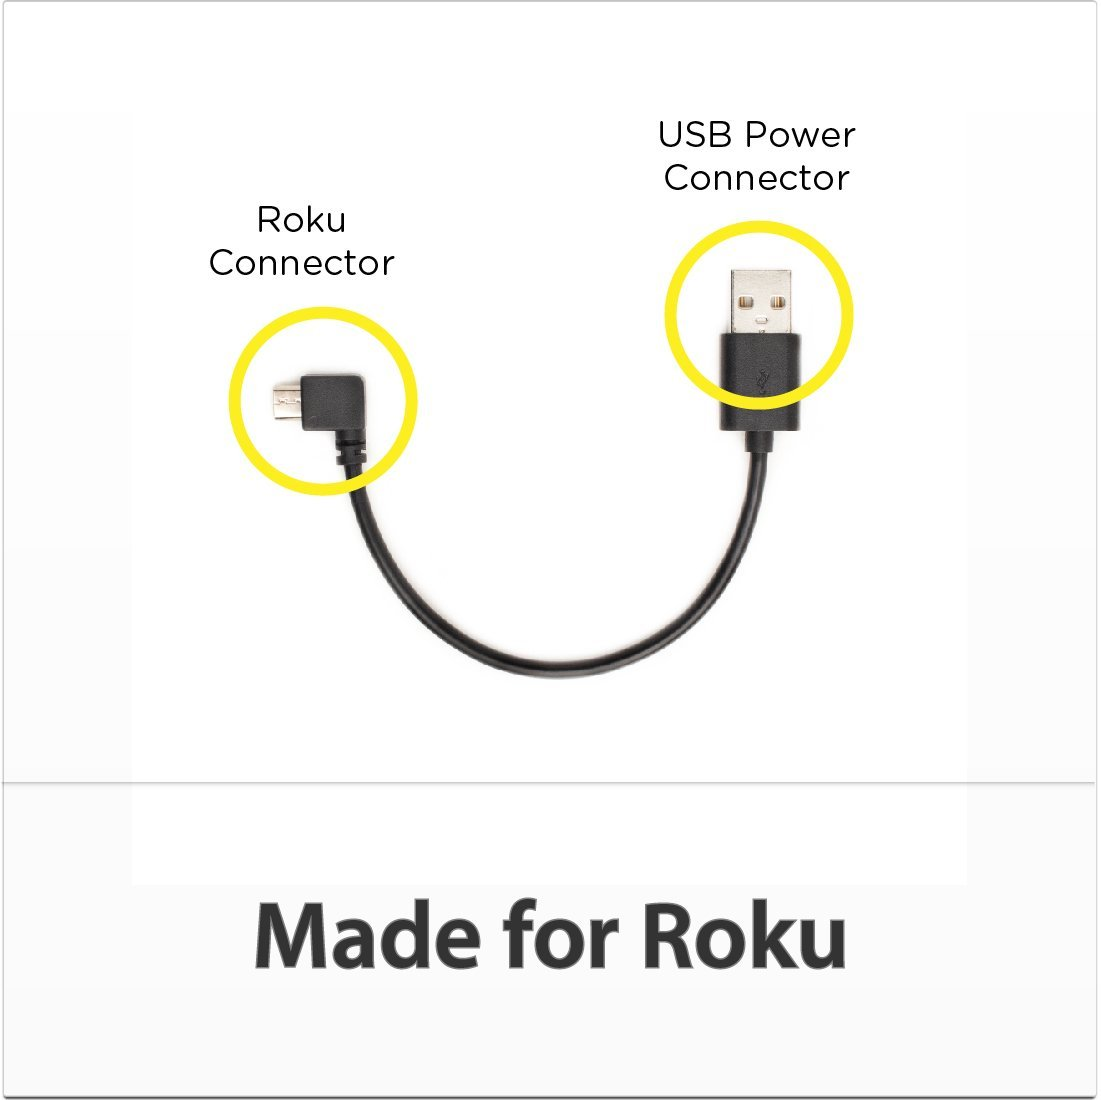 Wiring Diagram Further Mini Usb Cable Along With Tvpower For Powering Roku Streaming Stick Pulse Eight Ultra Hd Distribution And Control Products